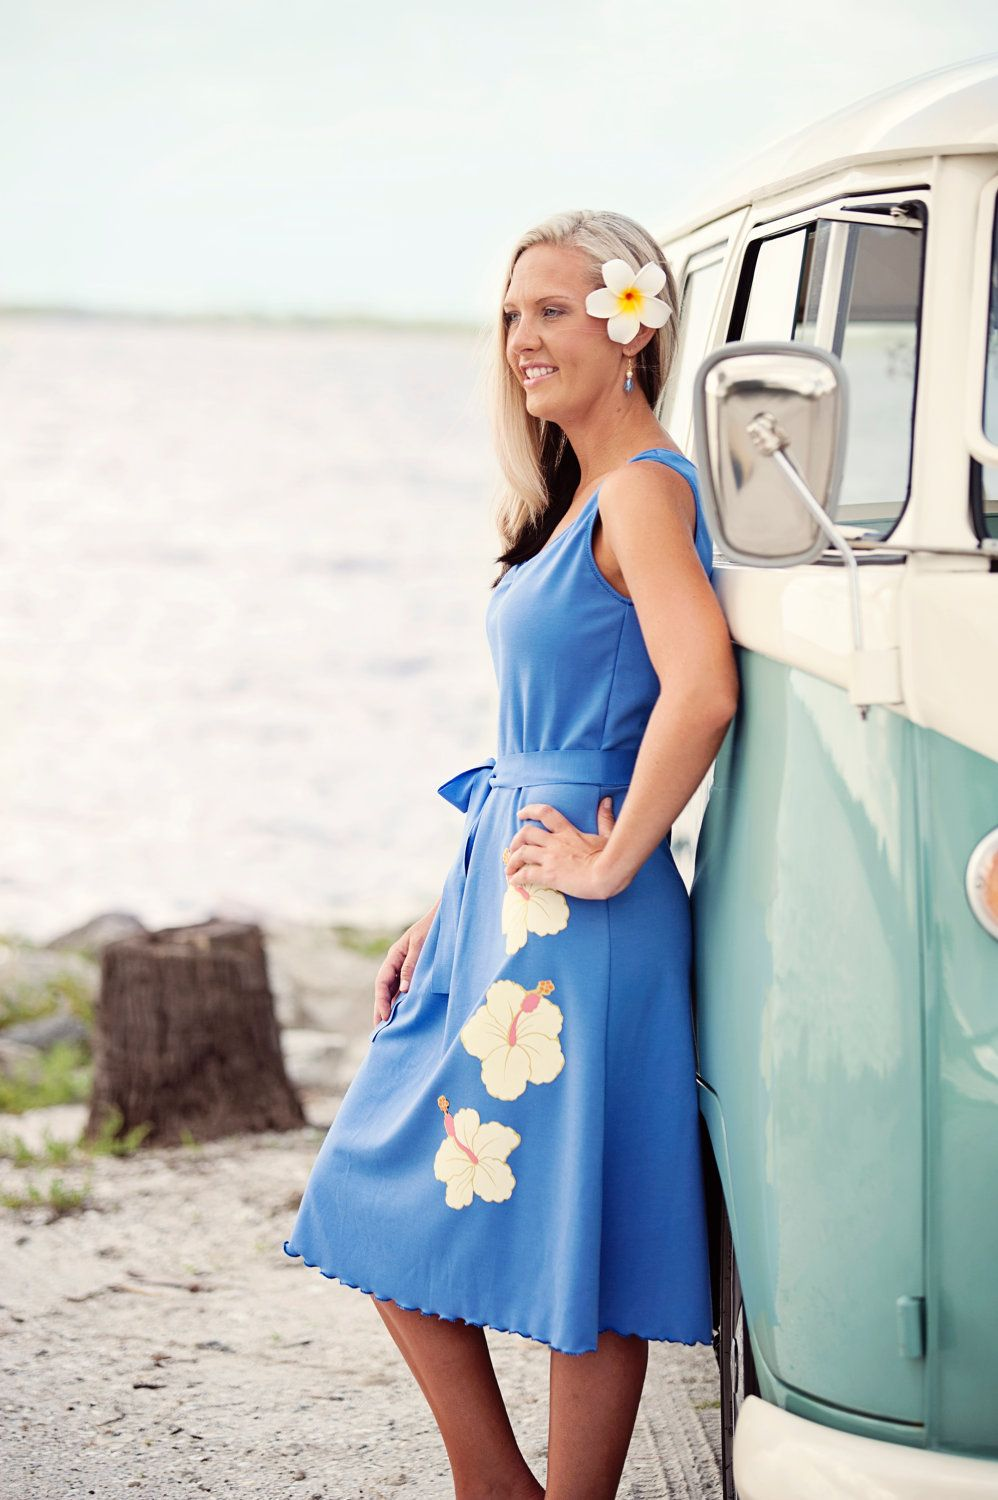 Beach wedding periwinkle bridesmaids dress by ishkabibblesdesigns beach wedding periwinkle bridesmaids dress by ishkabibblesdesigns ombrellifo Images